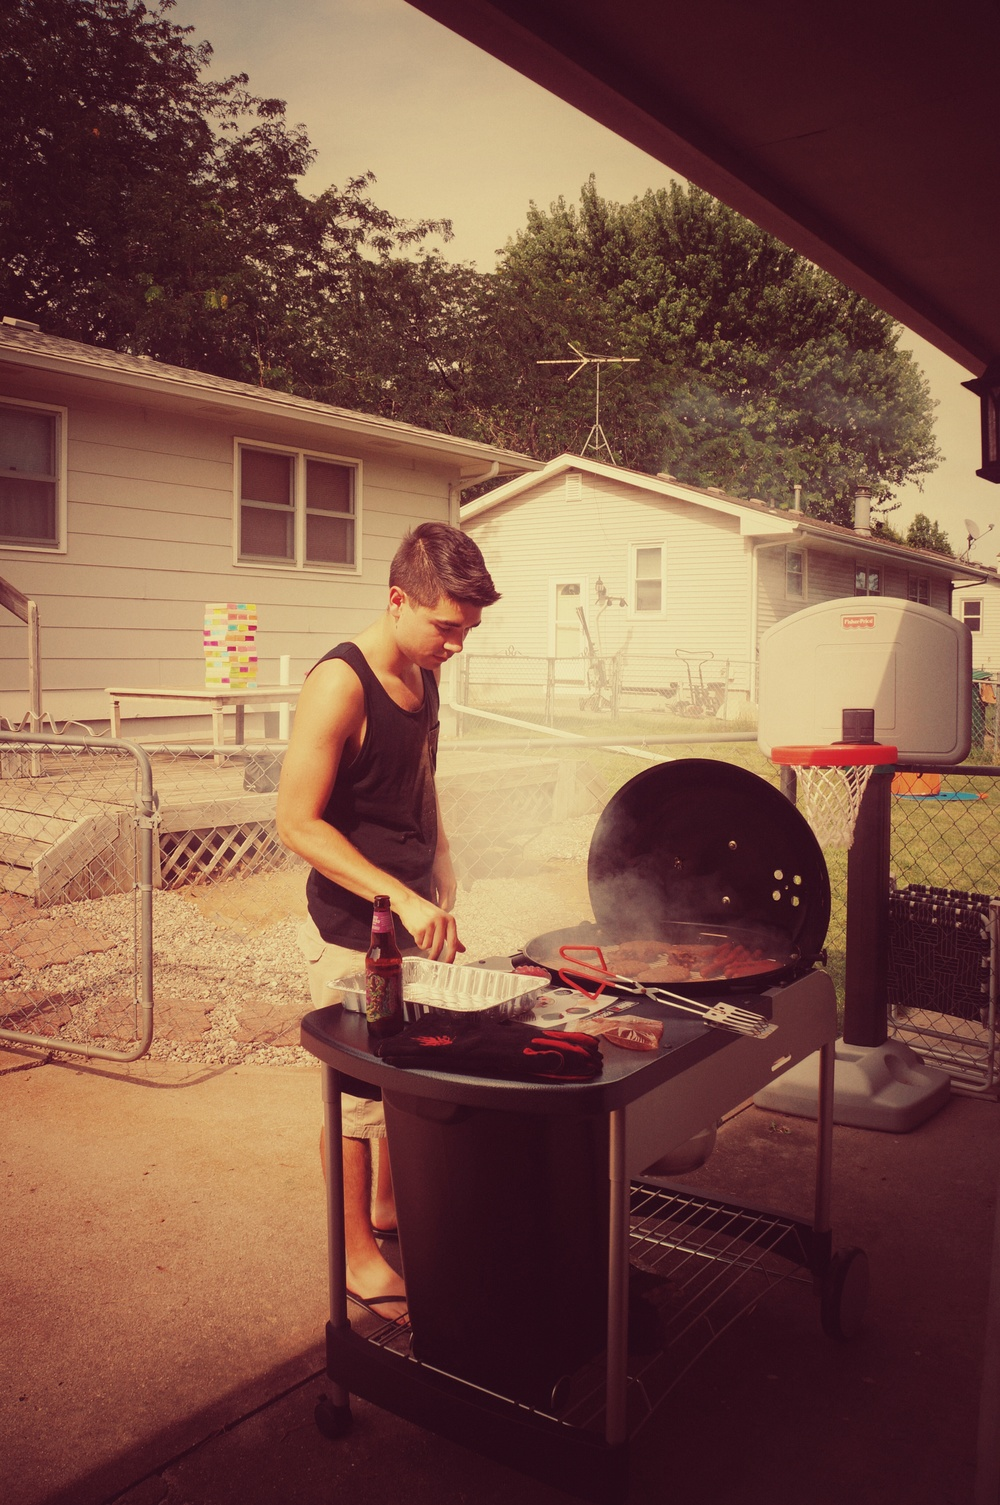 Me on the grill